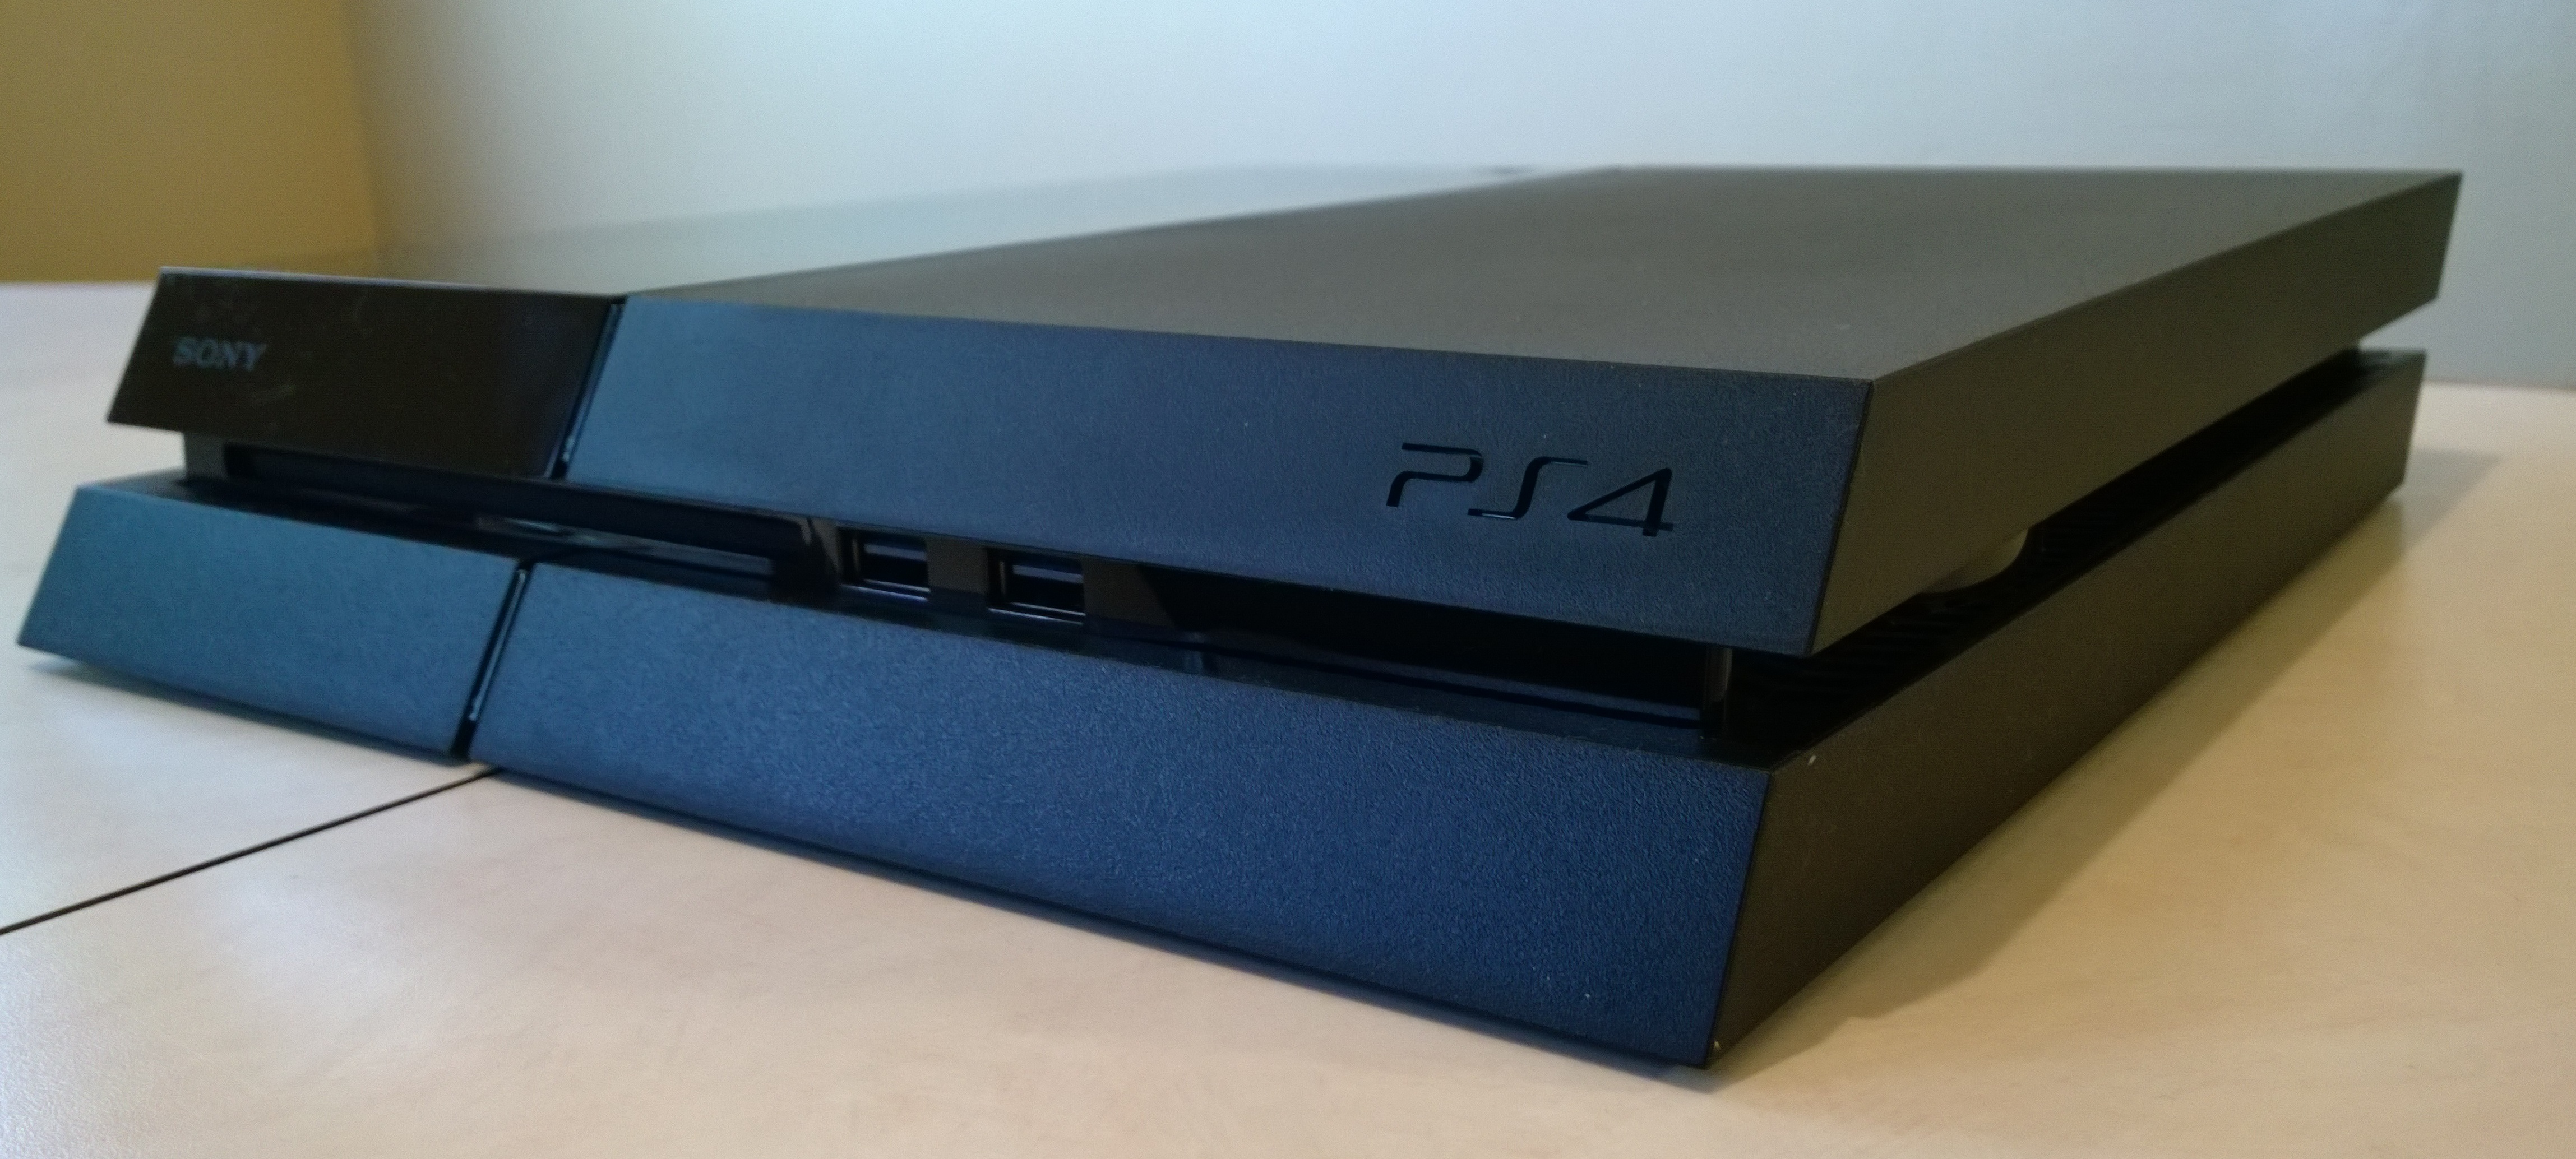 Sony Takes Step Towards PS4 Launch in China